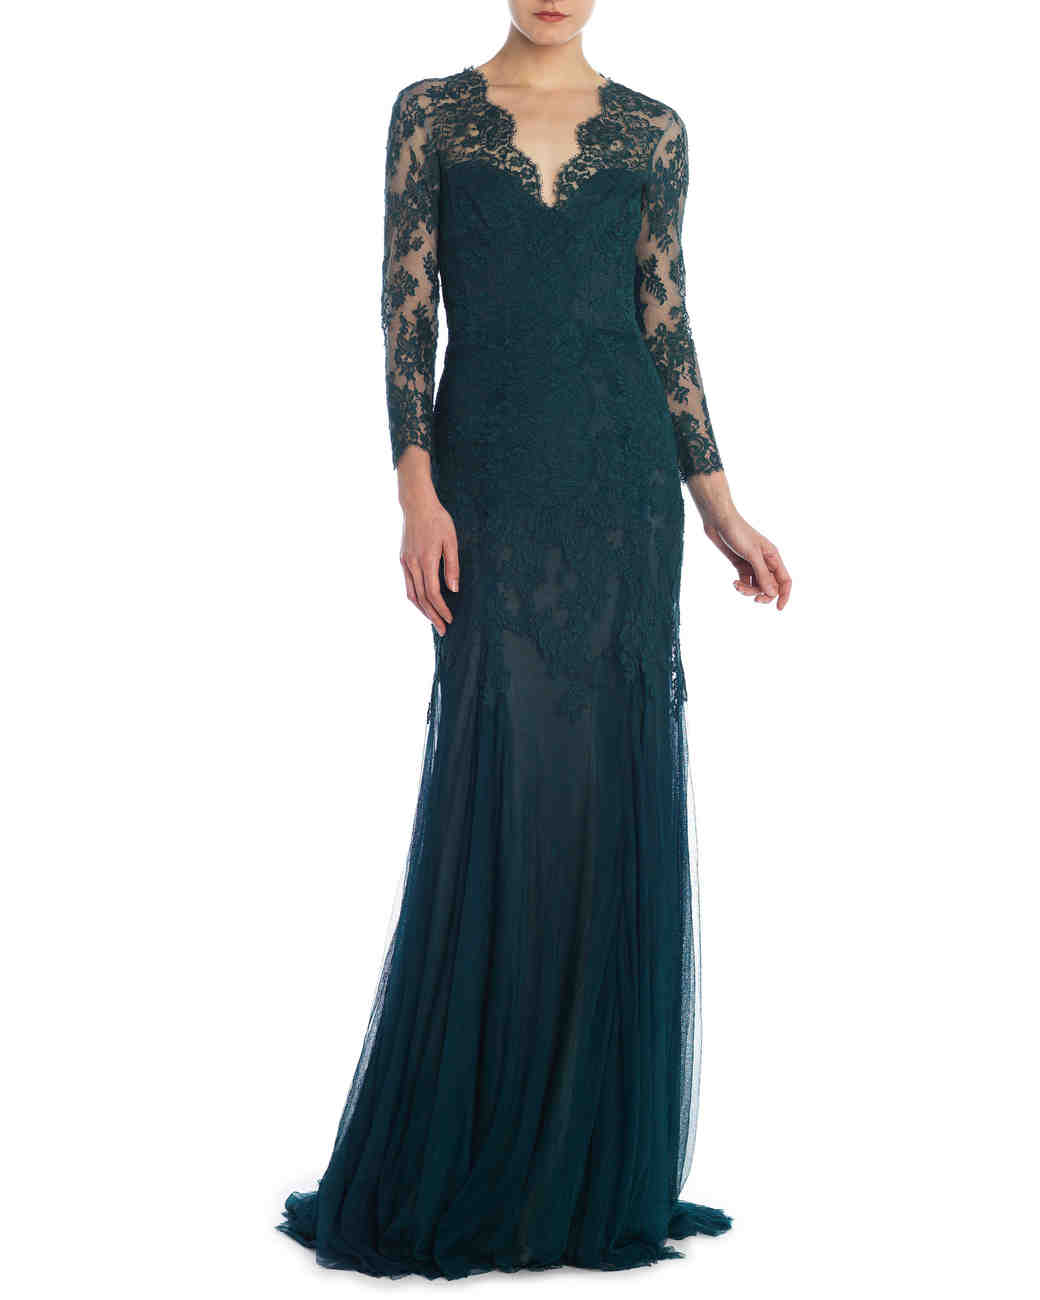 Green Long-Sleeved Lace Gown